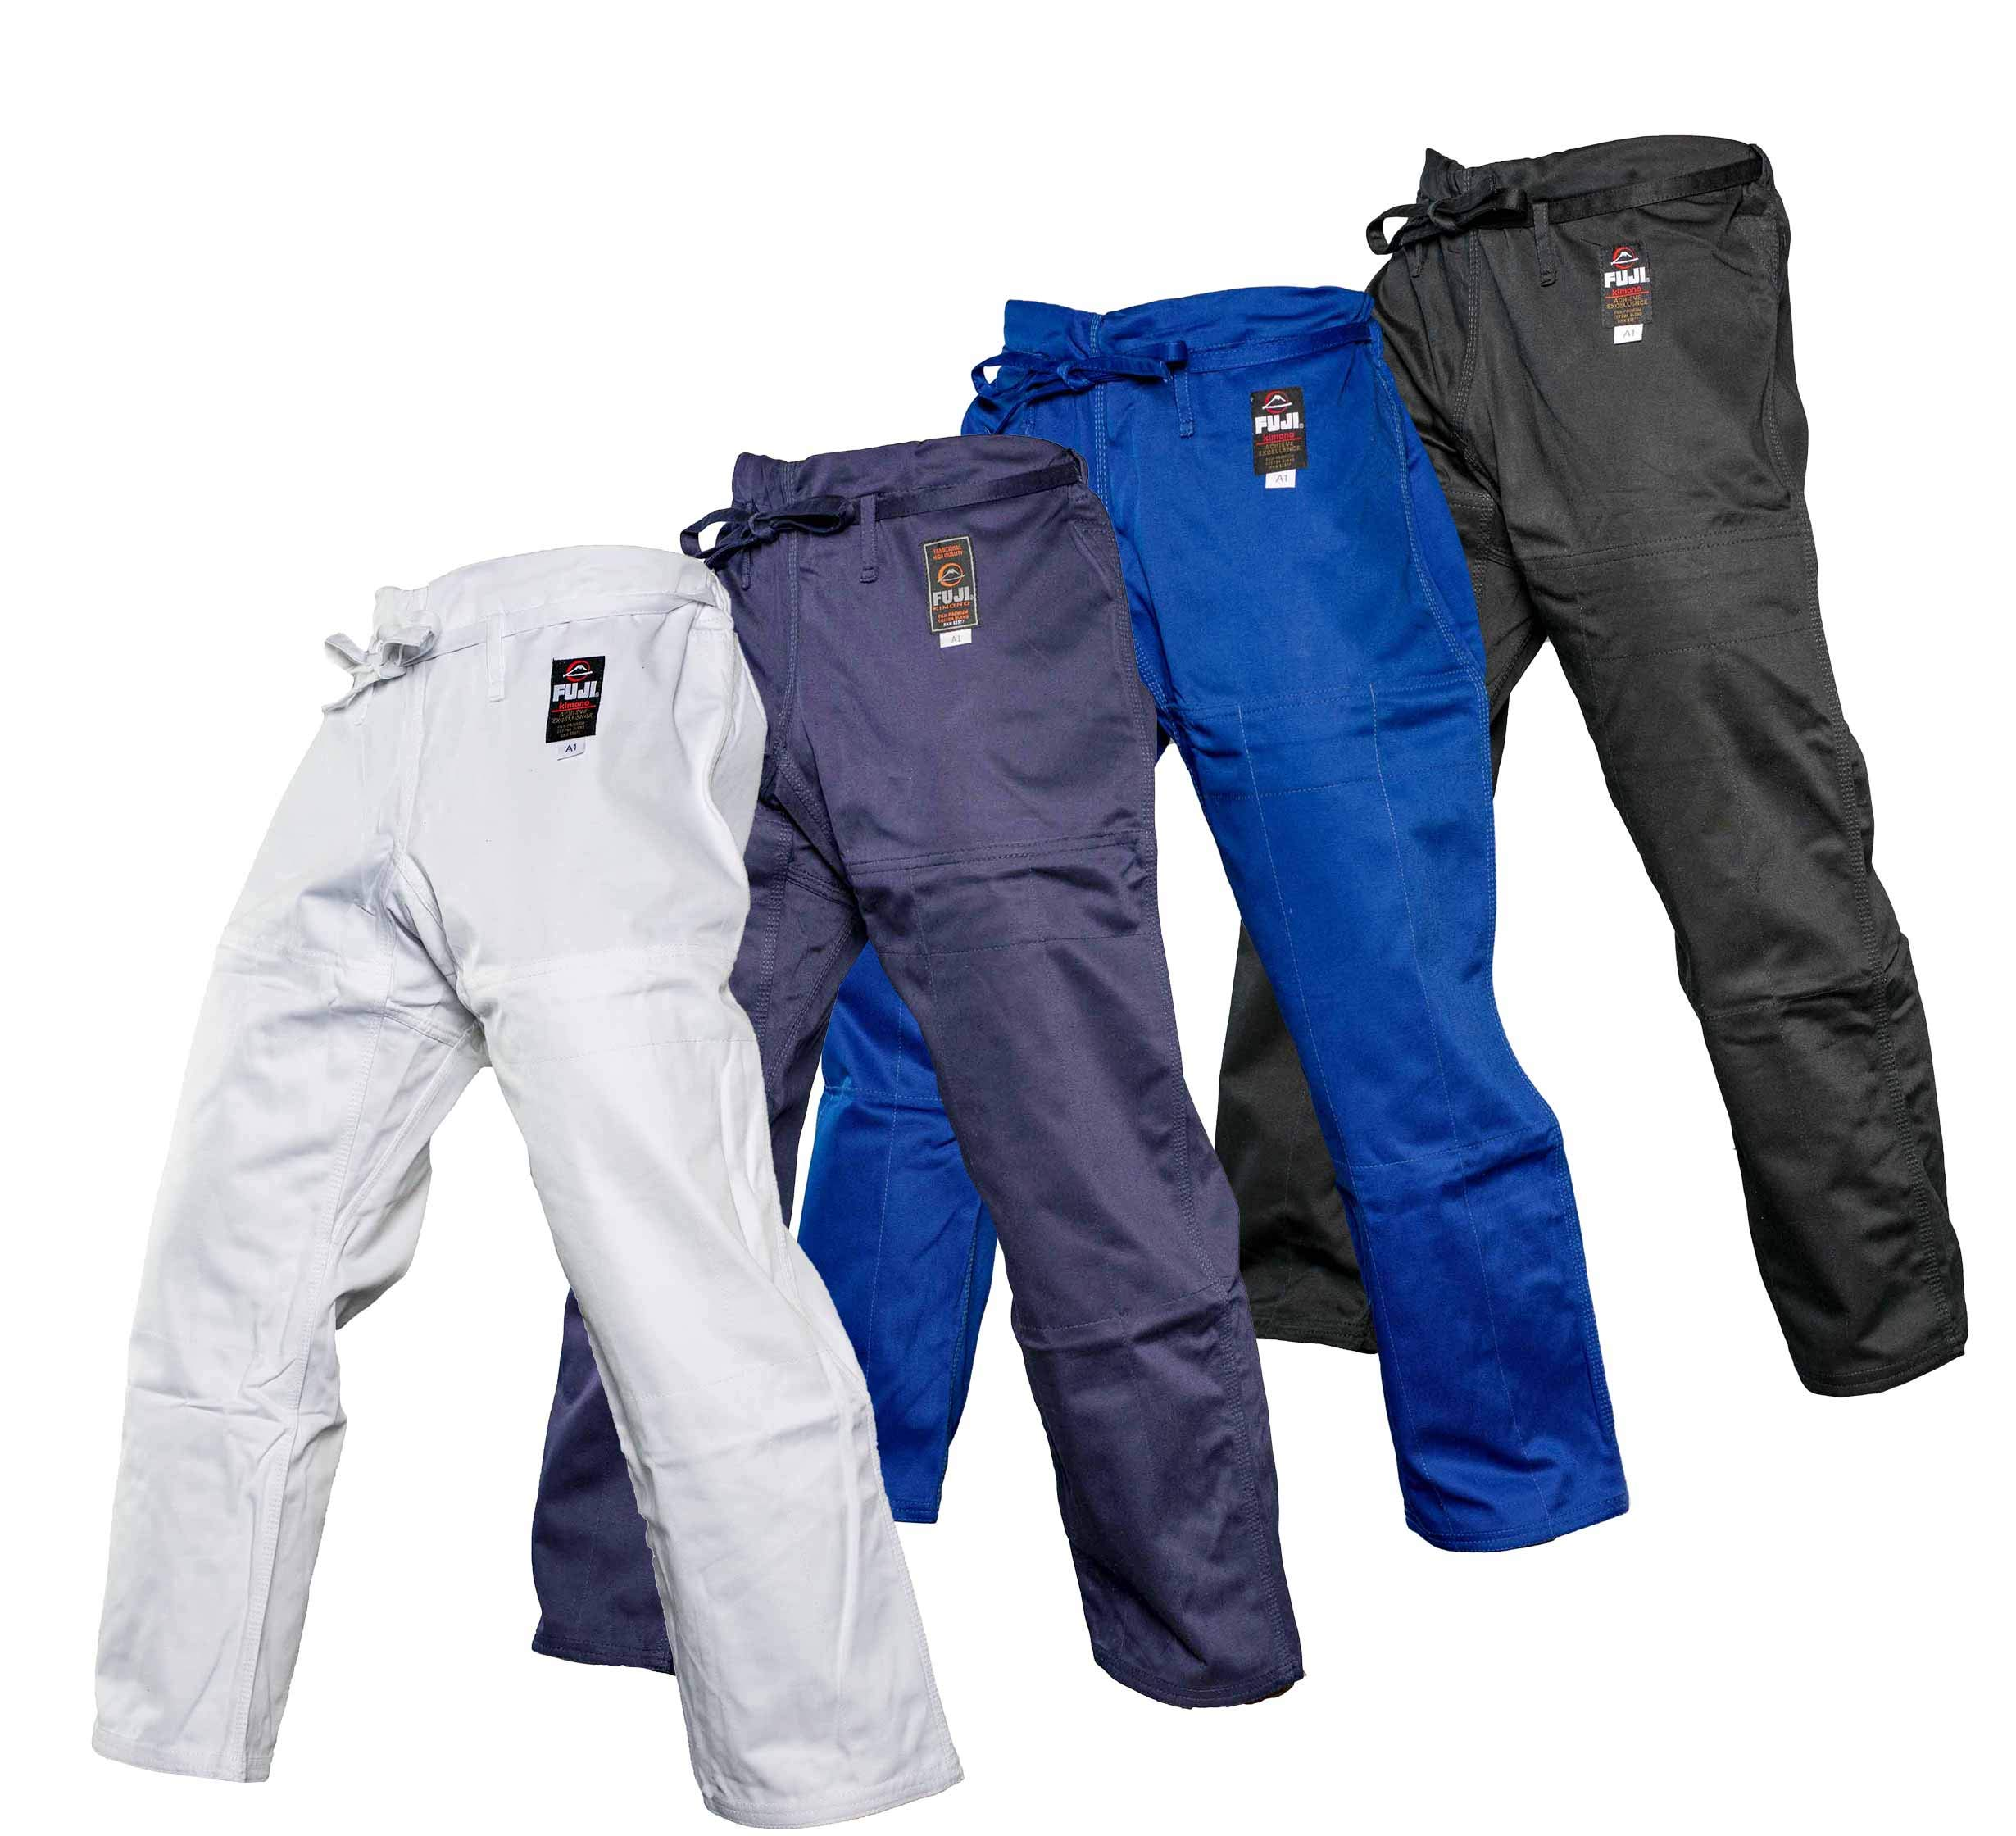 Fuji BJJ Gi Pants,Blue,A4 by Fuji